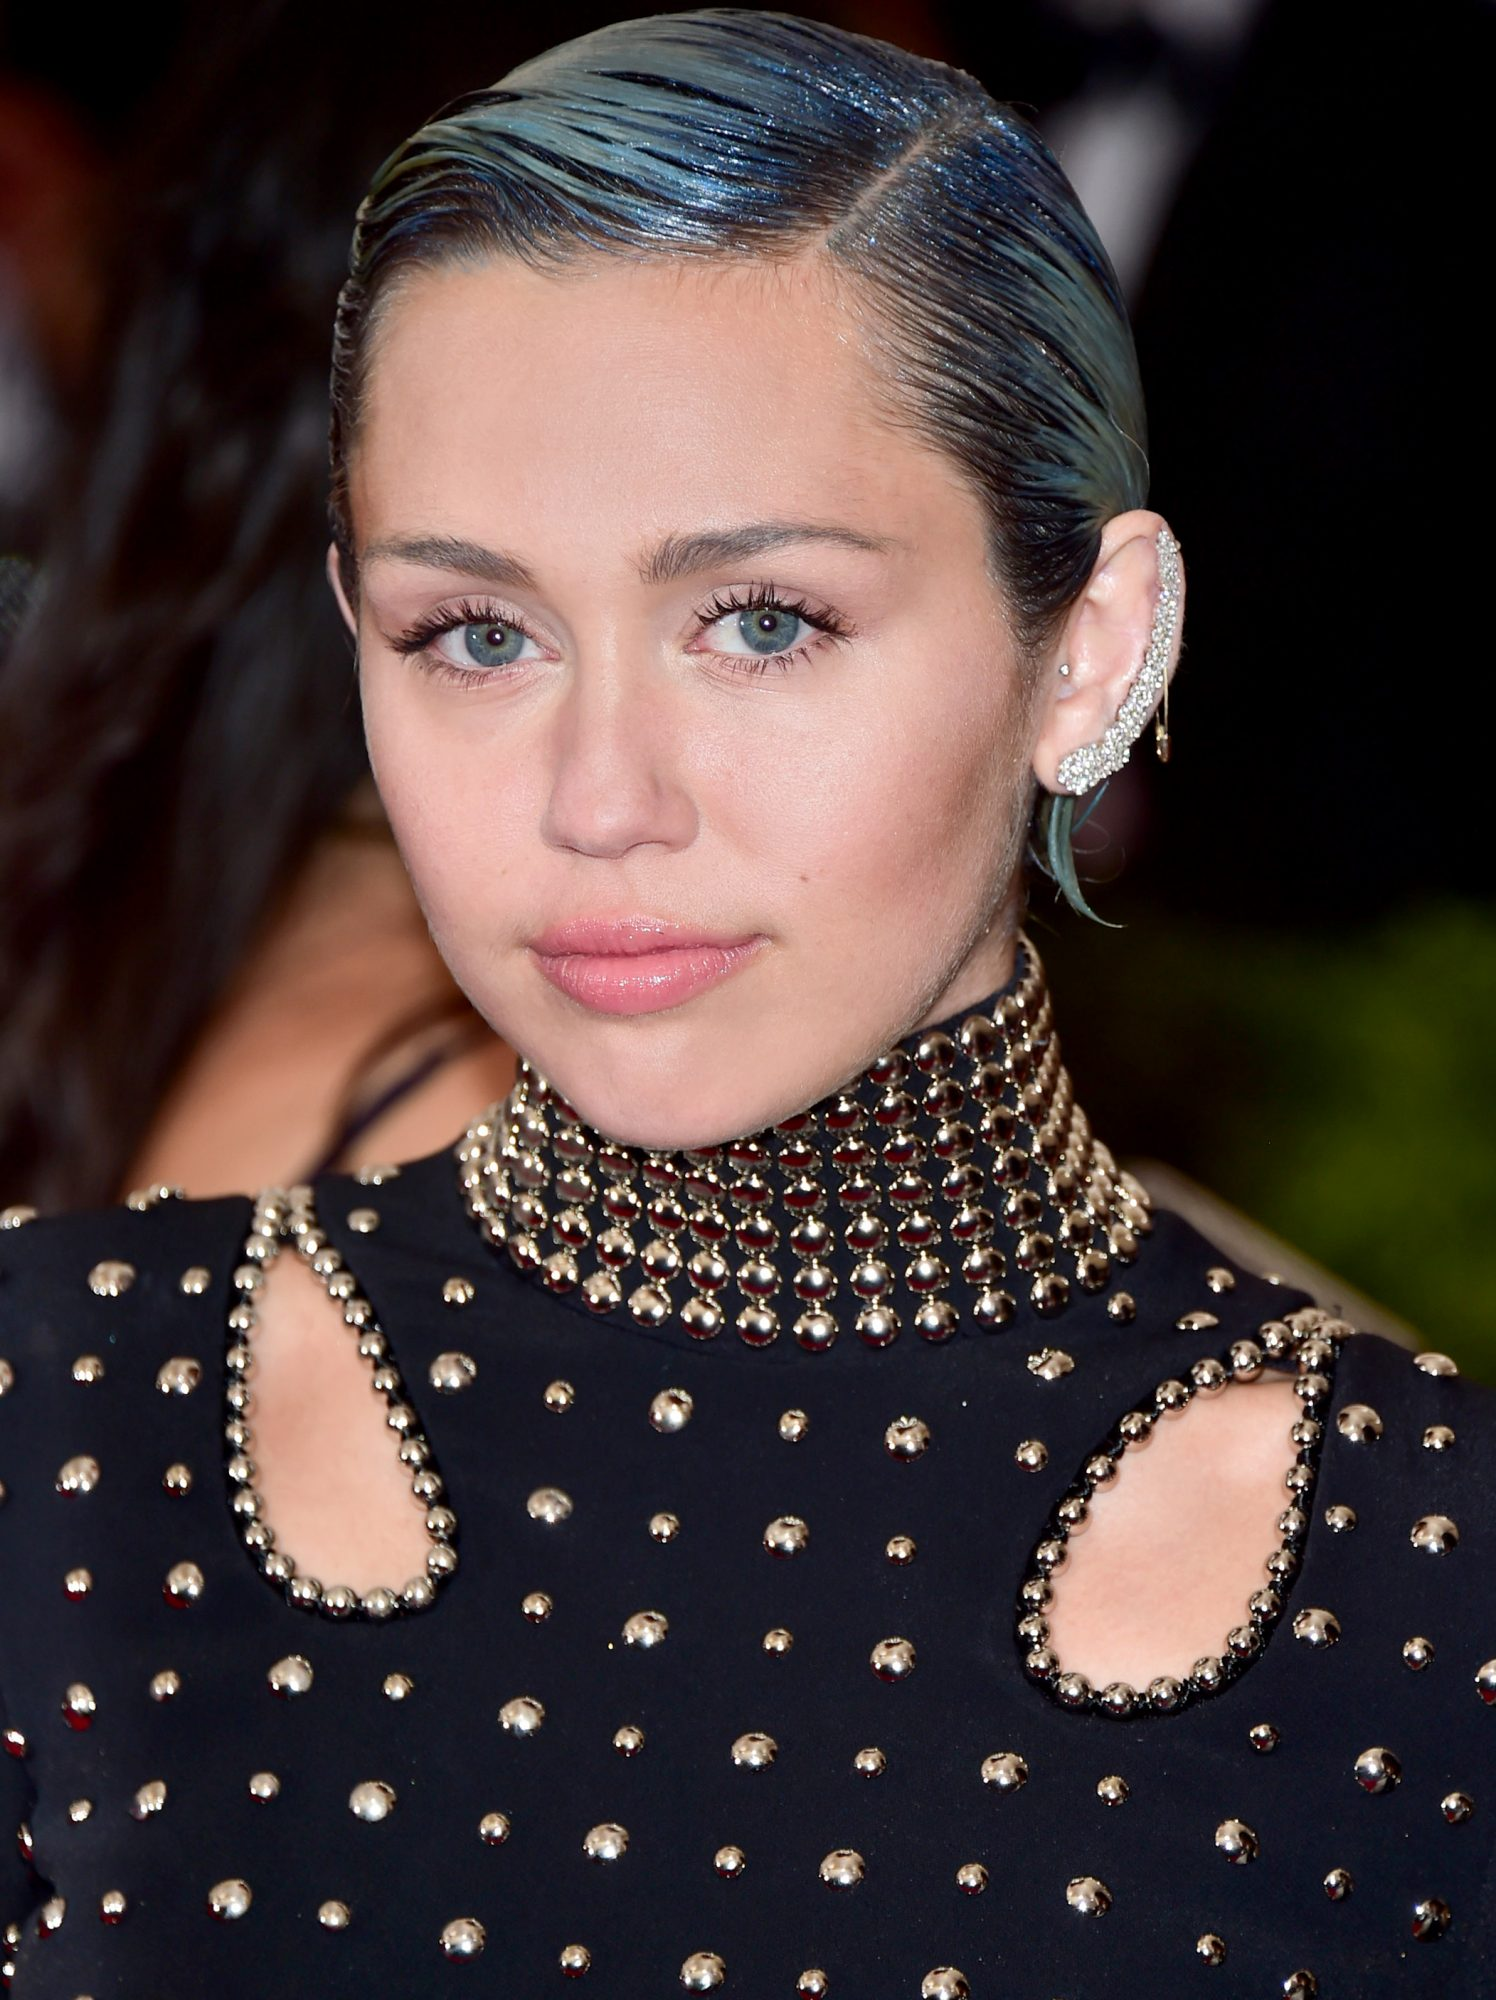 Miley Cyrus to Host the 2015 MTV Video Music Awards